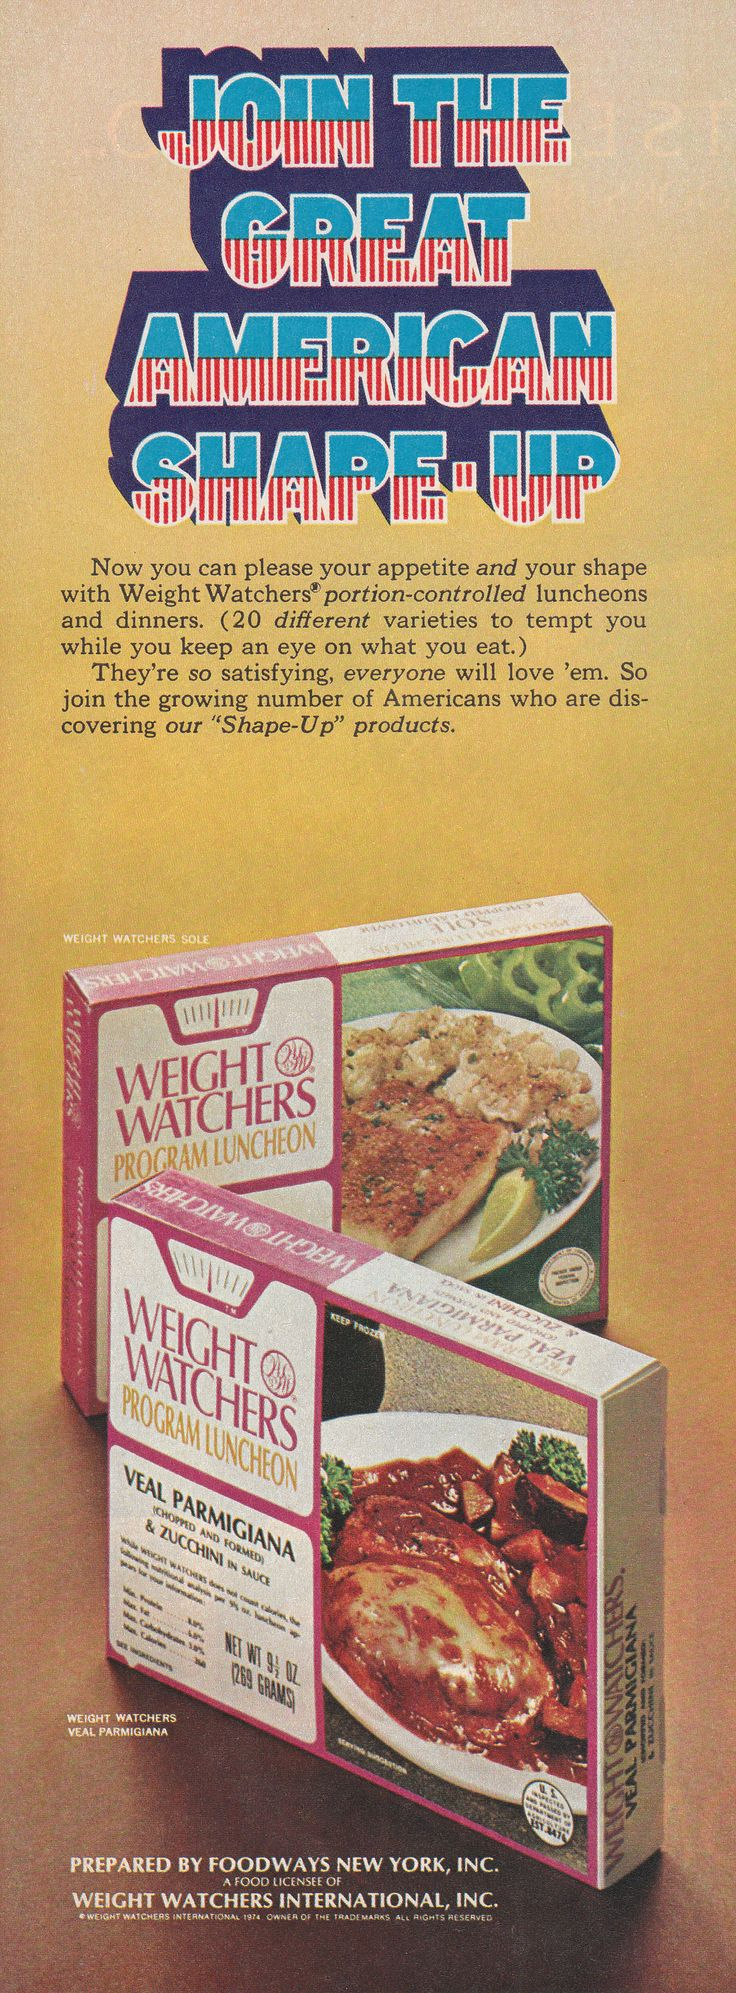 1000+ images about Diet, exercise, and beauty in the 1970s on Pinterest | Carbohydrate diet ...